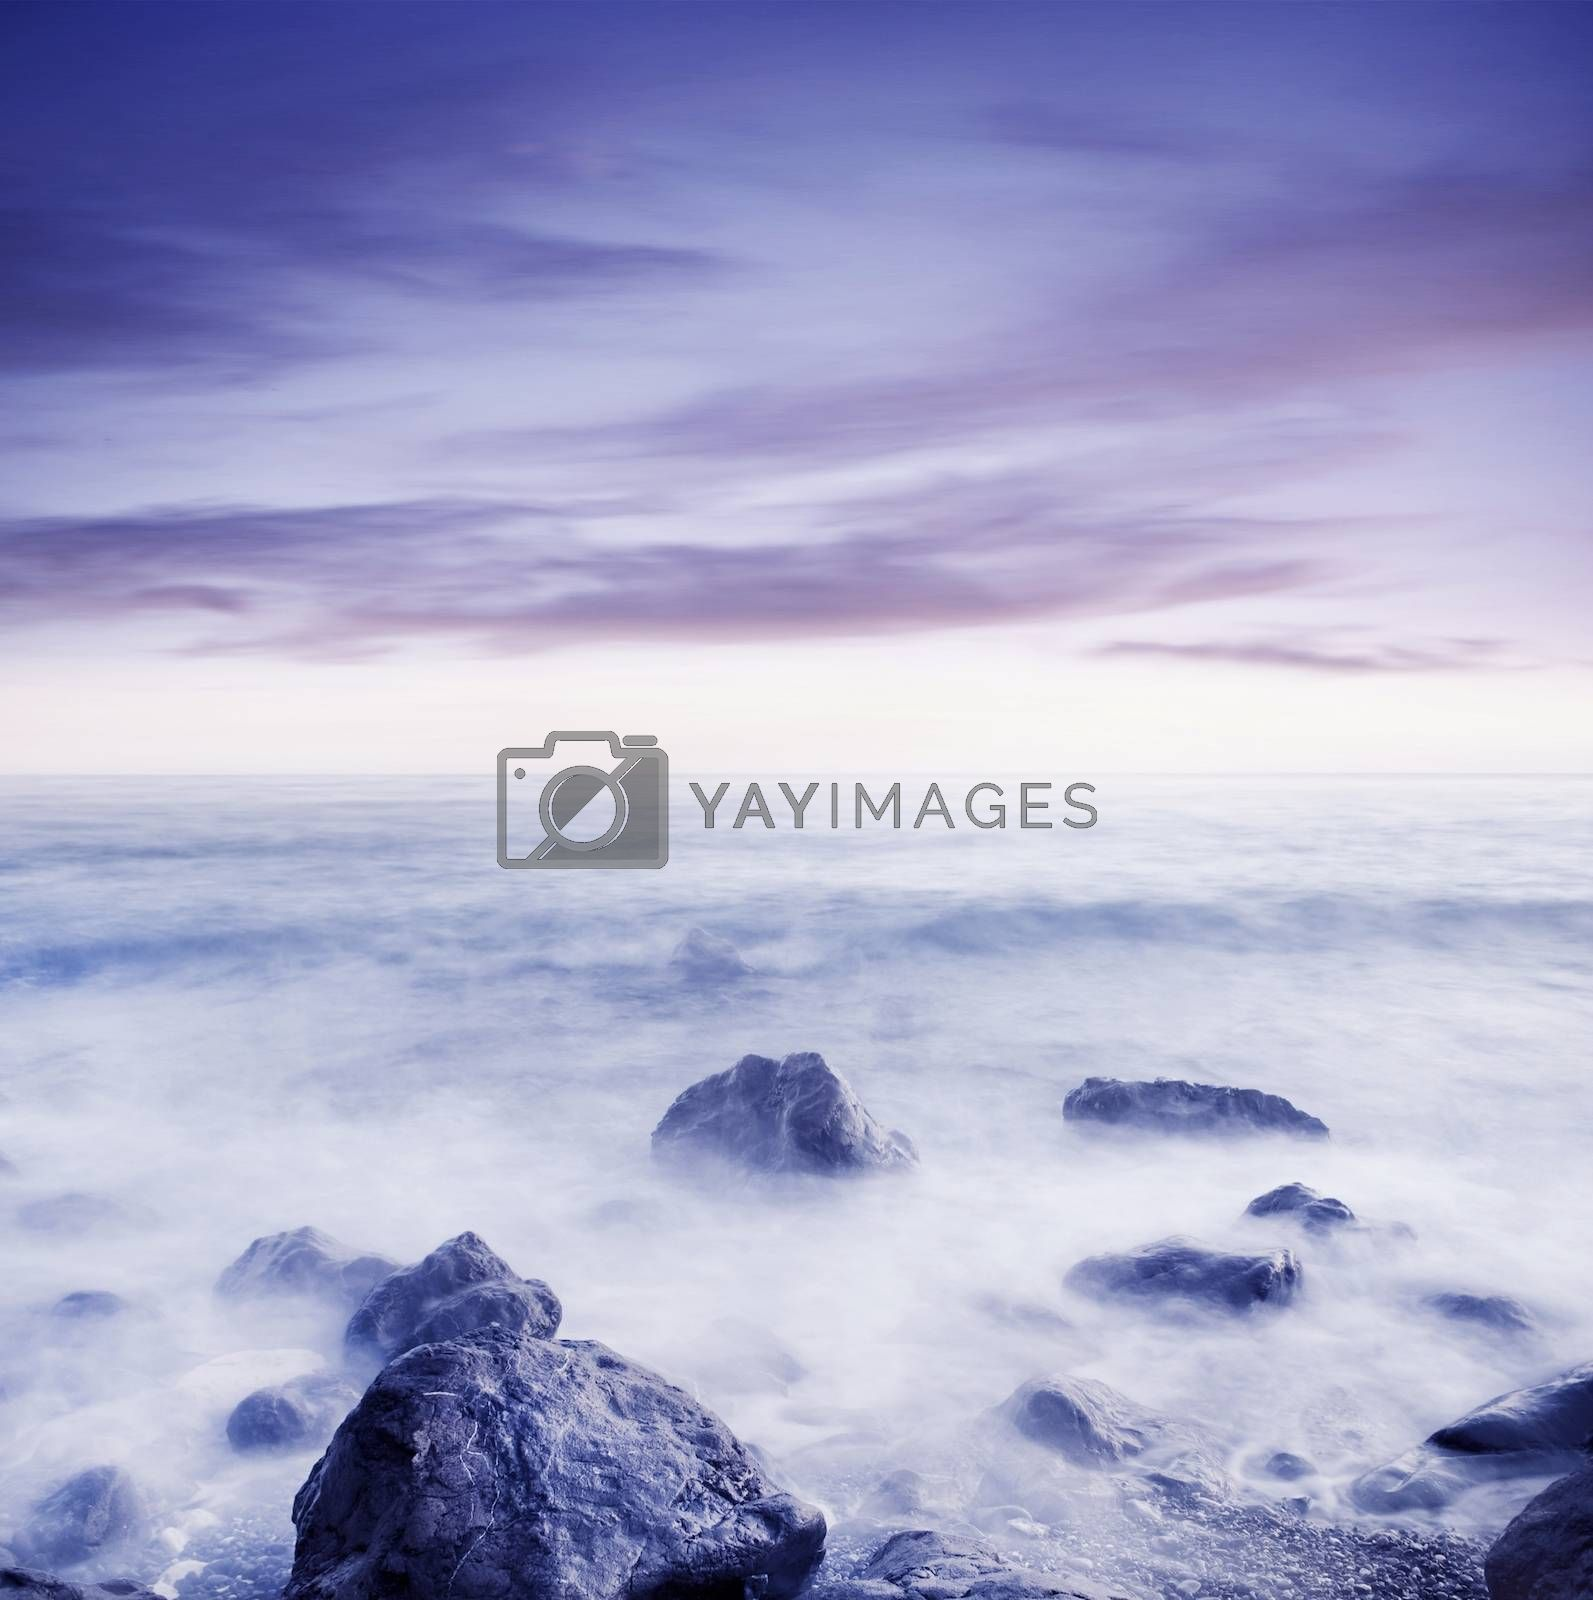 Royalty free image of sea coast by tycoon